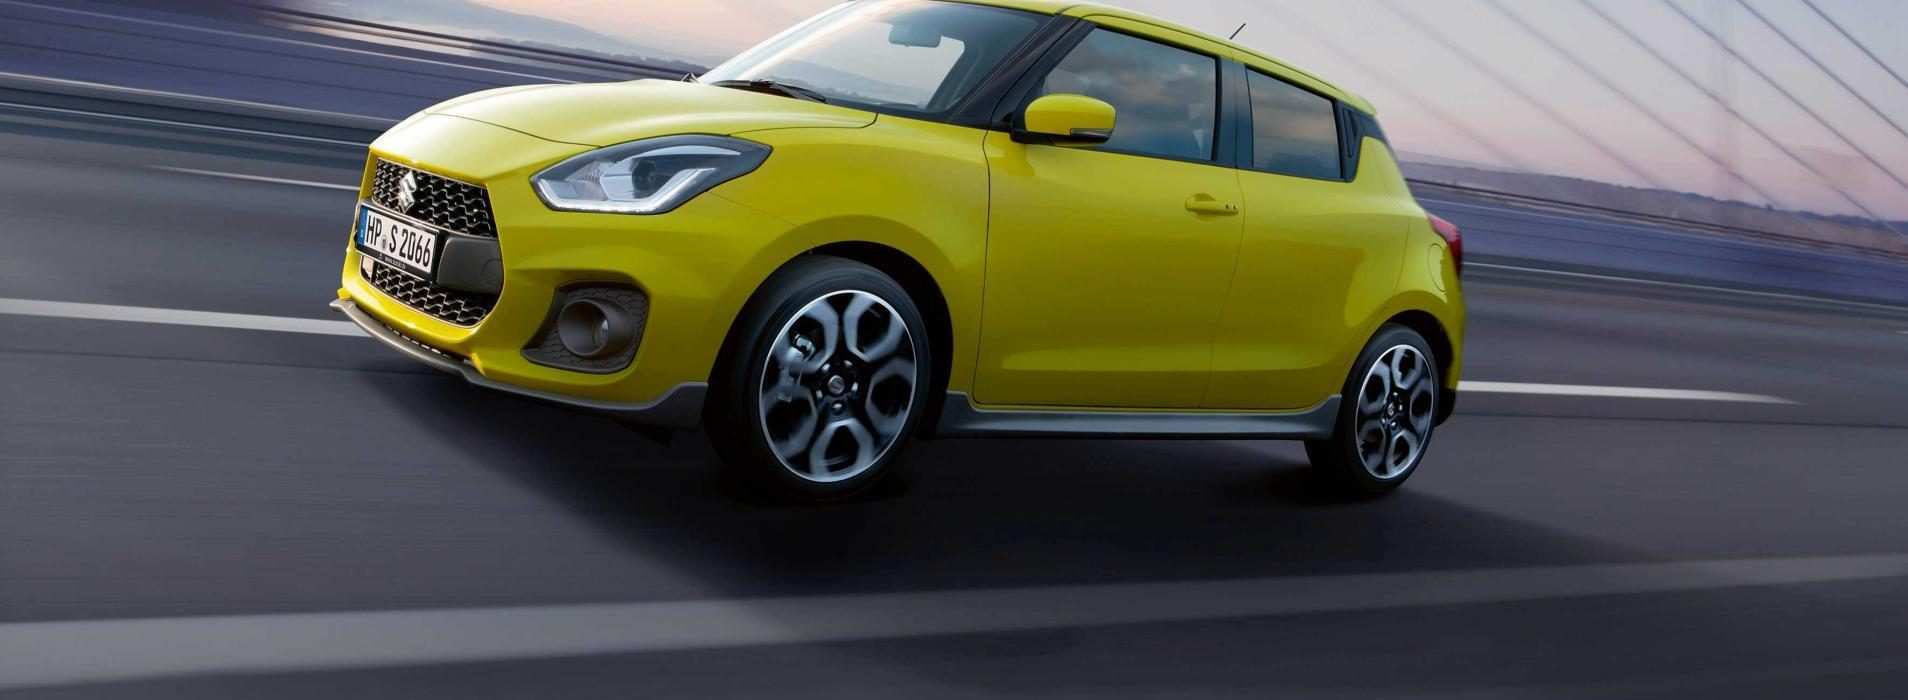 59 The Best 2019 Suzuki Swift Review